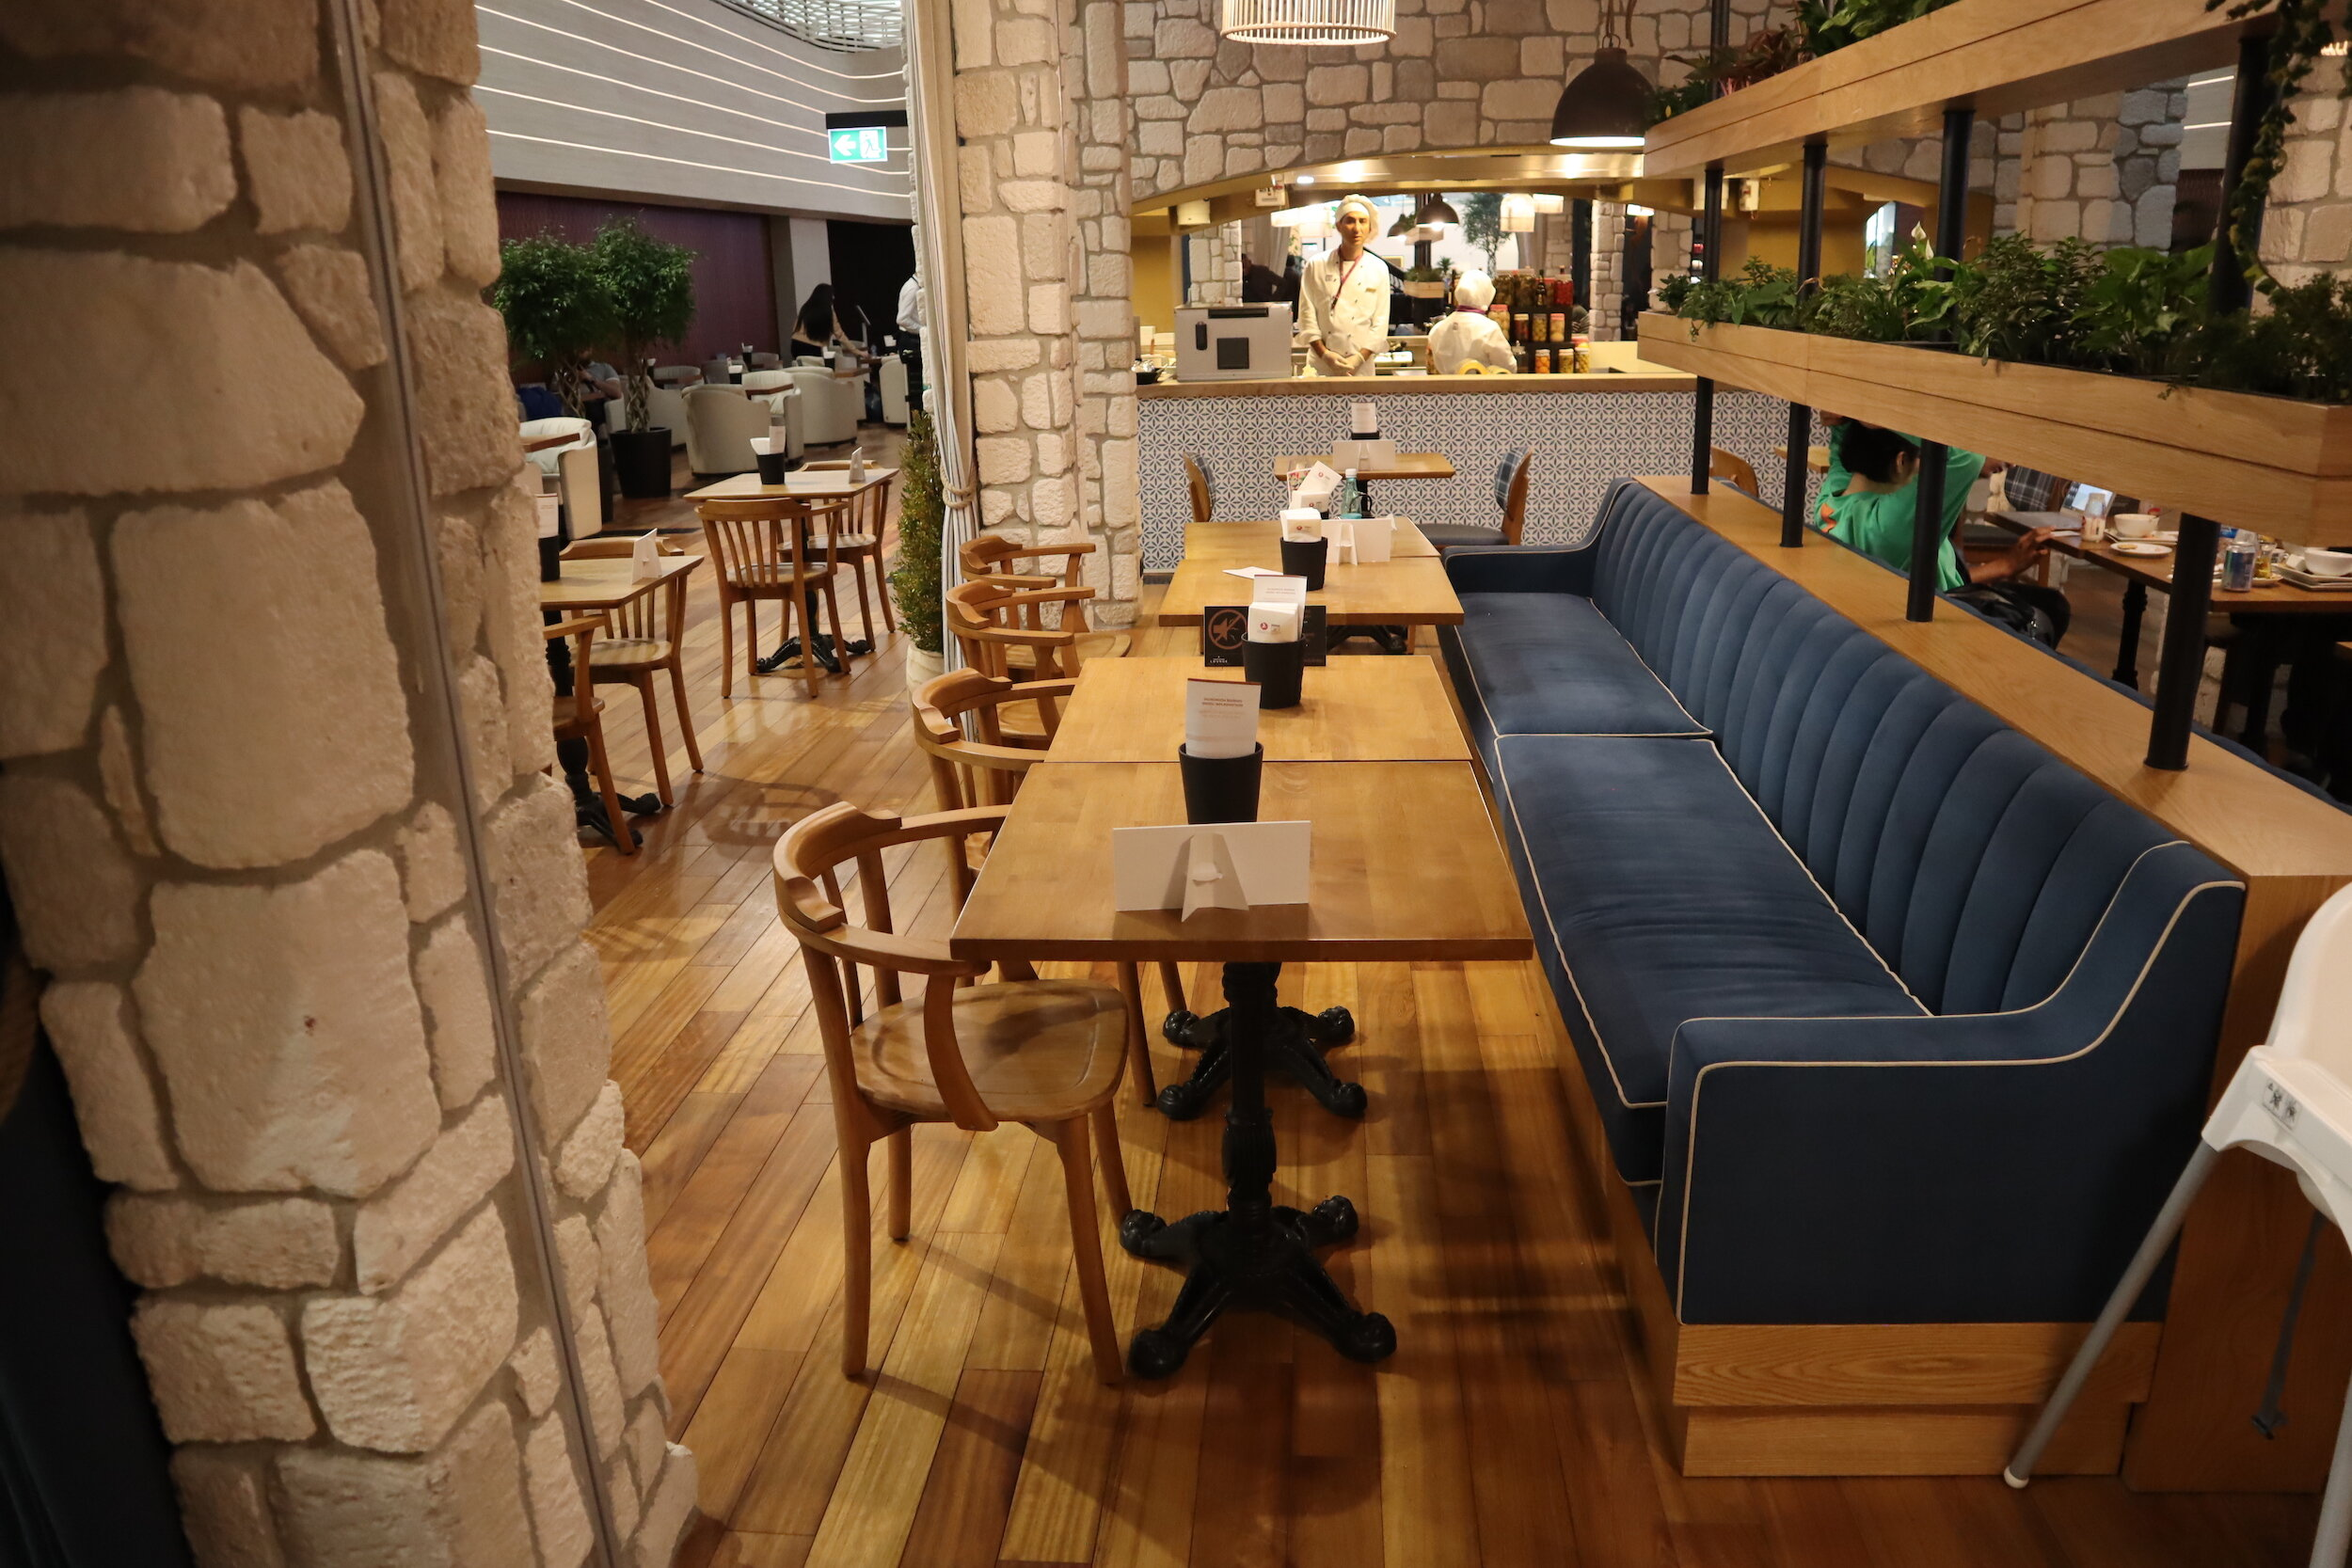 Turkish Airlines Business Lounge Istanbul – Dining area